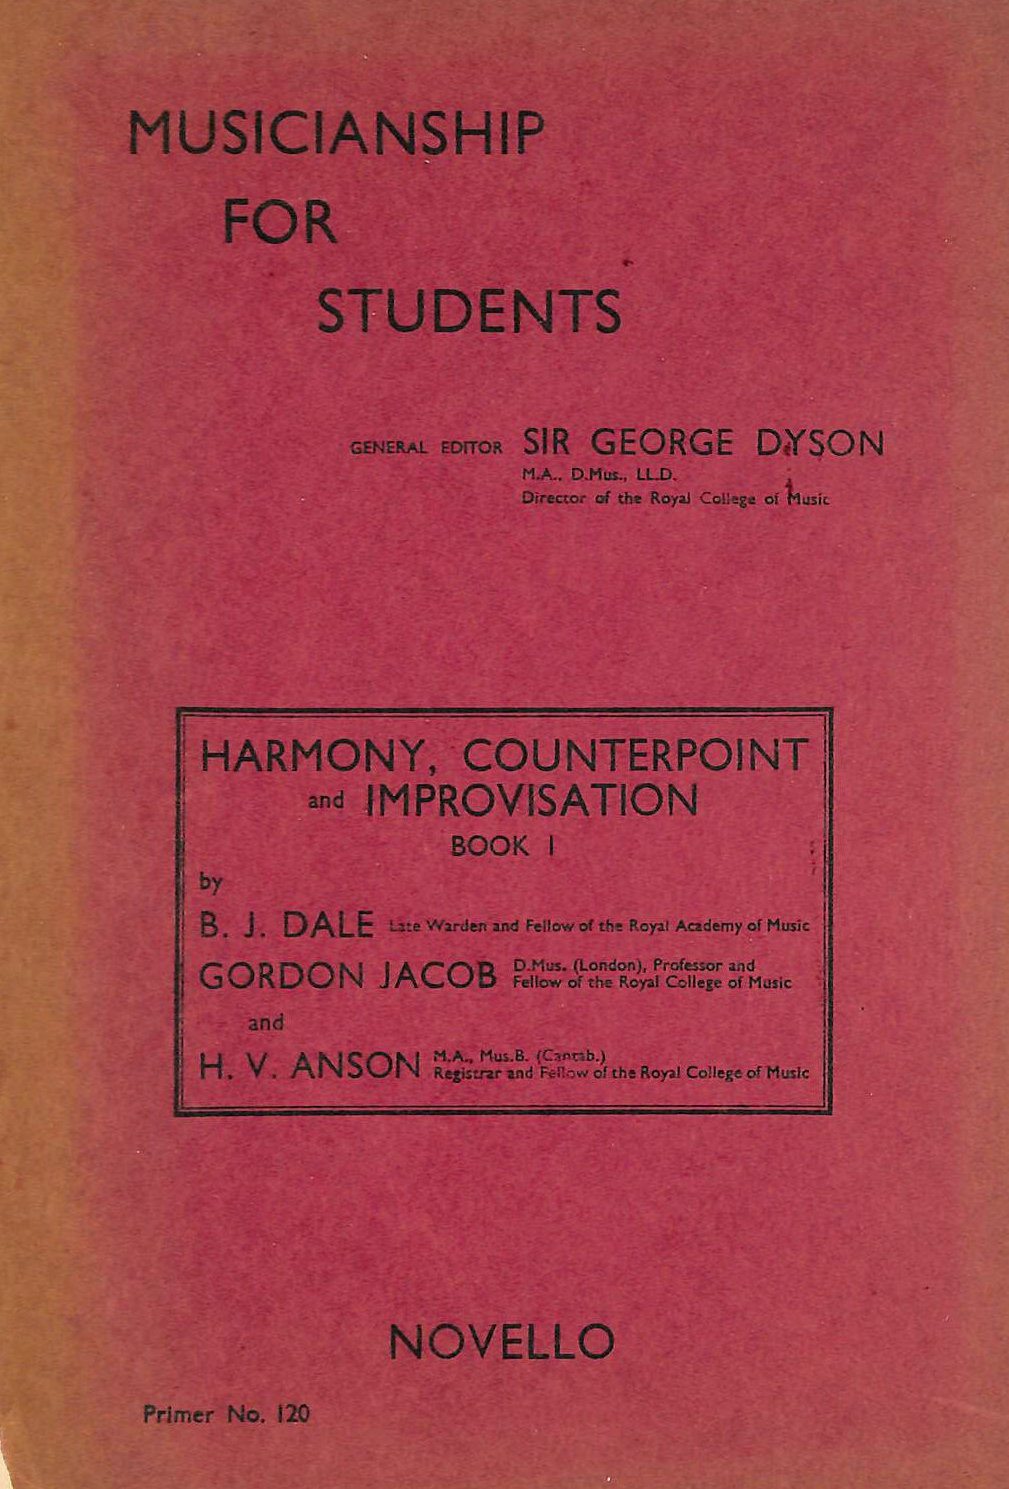 Image for Musicianship for Students (Primer No.120) Harmony, Counterpoint and Imporovisation Book 1